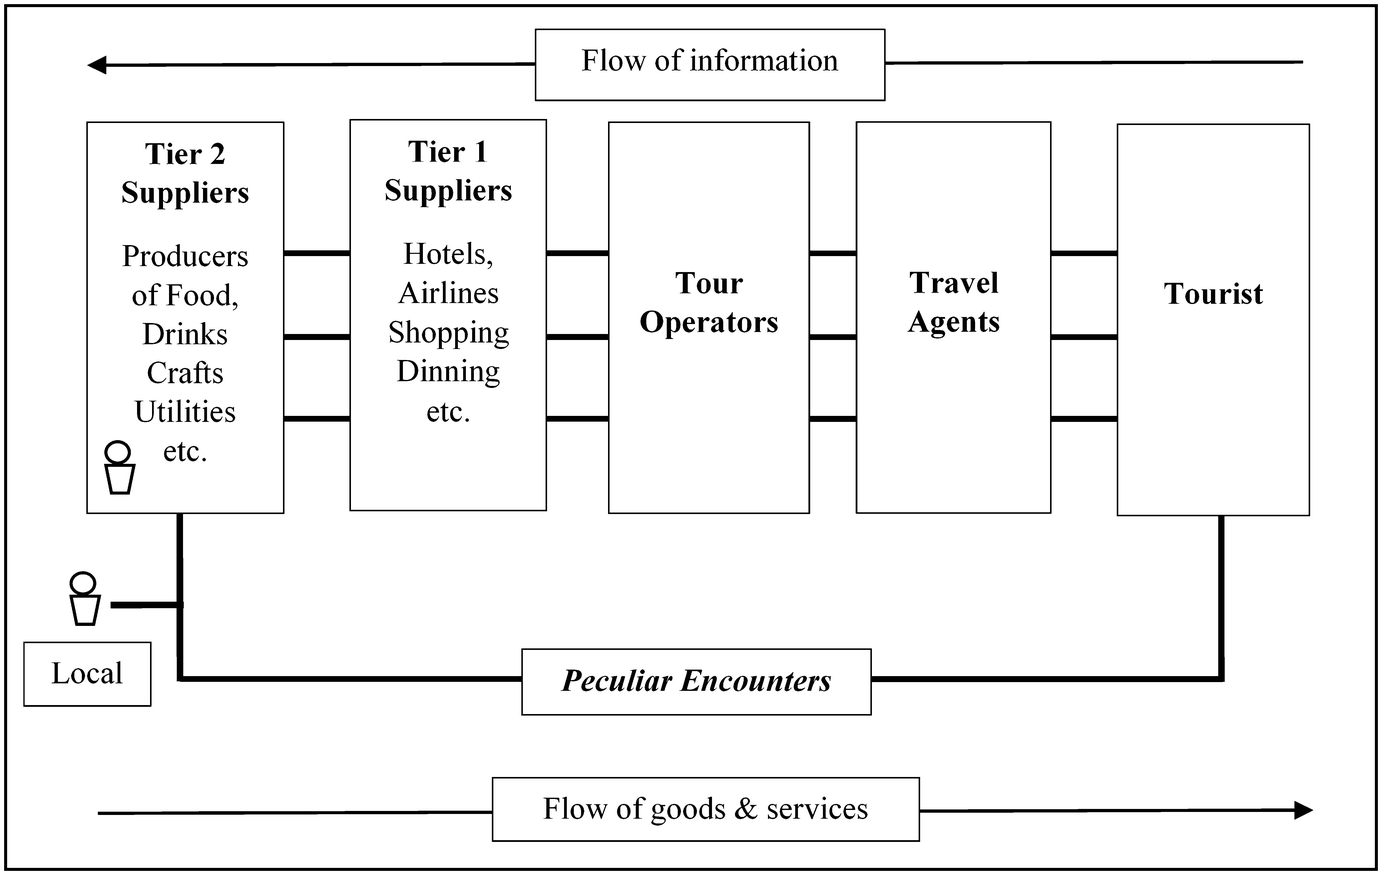 Designing a Sustainable Tourism Supply Chain: A Case Study from Asia